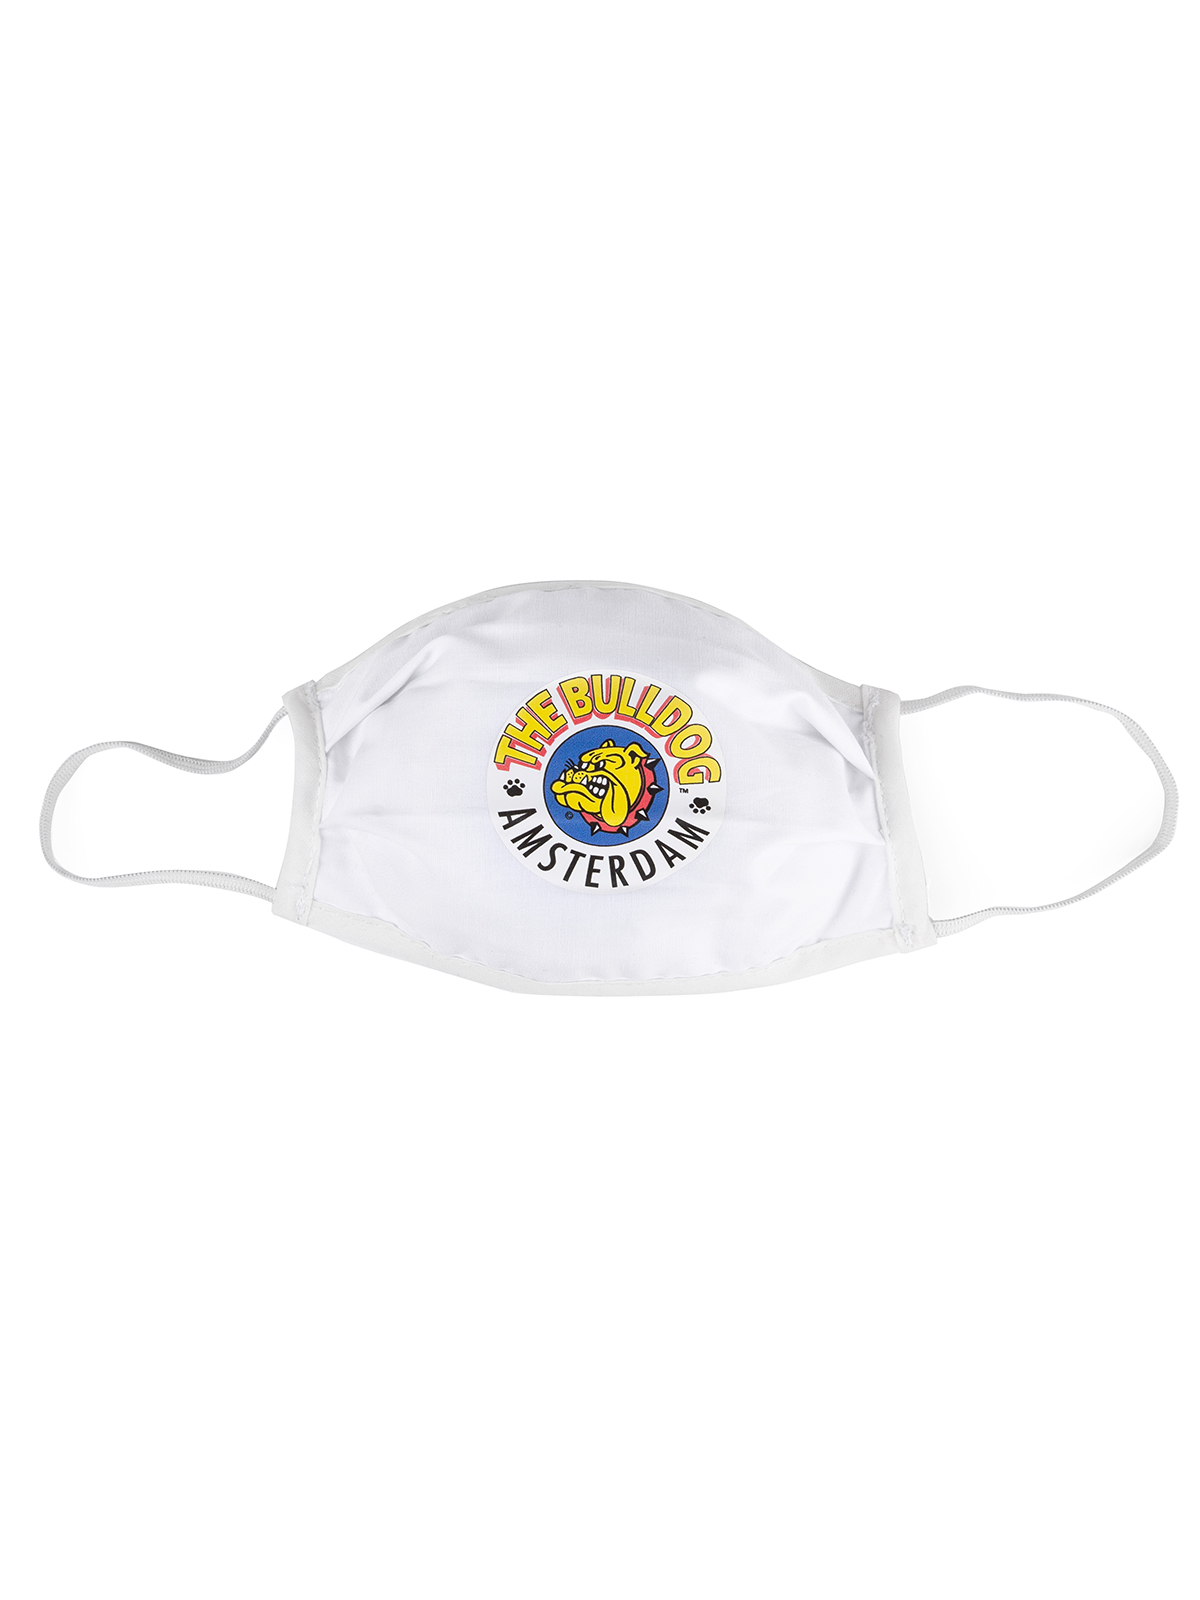 The Bulldog Face Mask The Original is the new stylish functional piece of your wardrobe. Water-repellent mask made of OEKO TEX certified cotton.